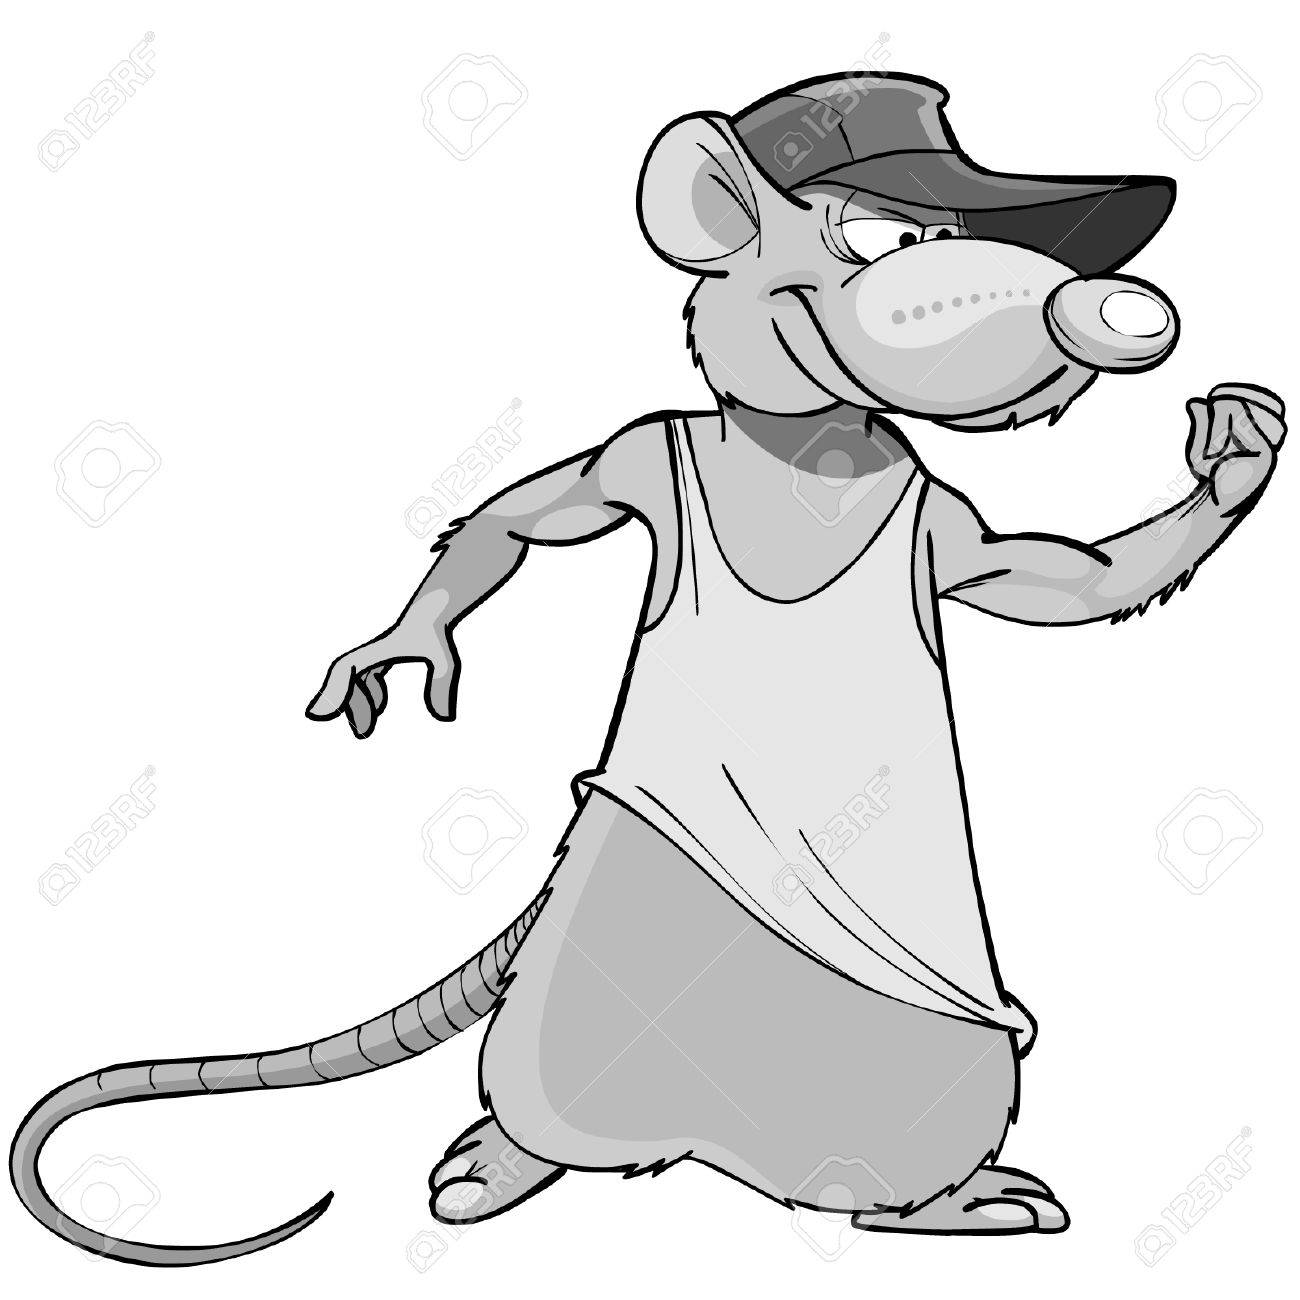 opossum stock photos royalty free opossum images and pictures